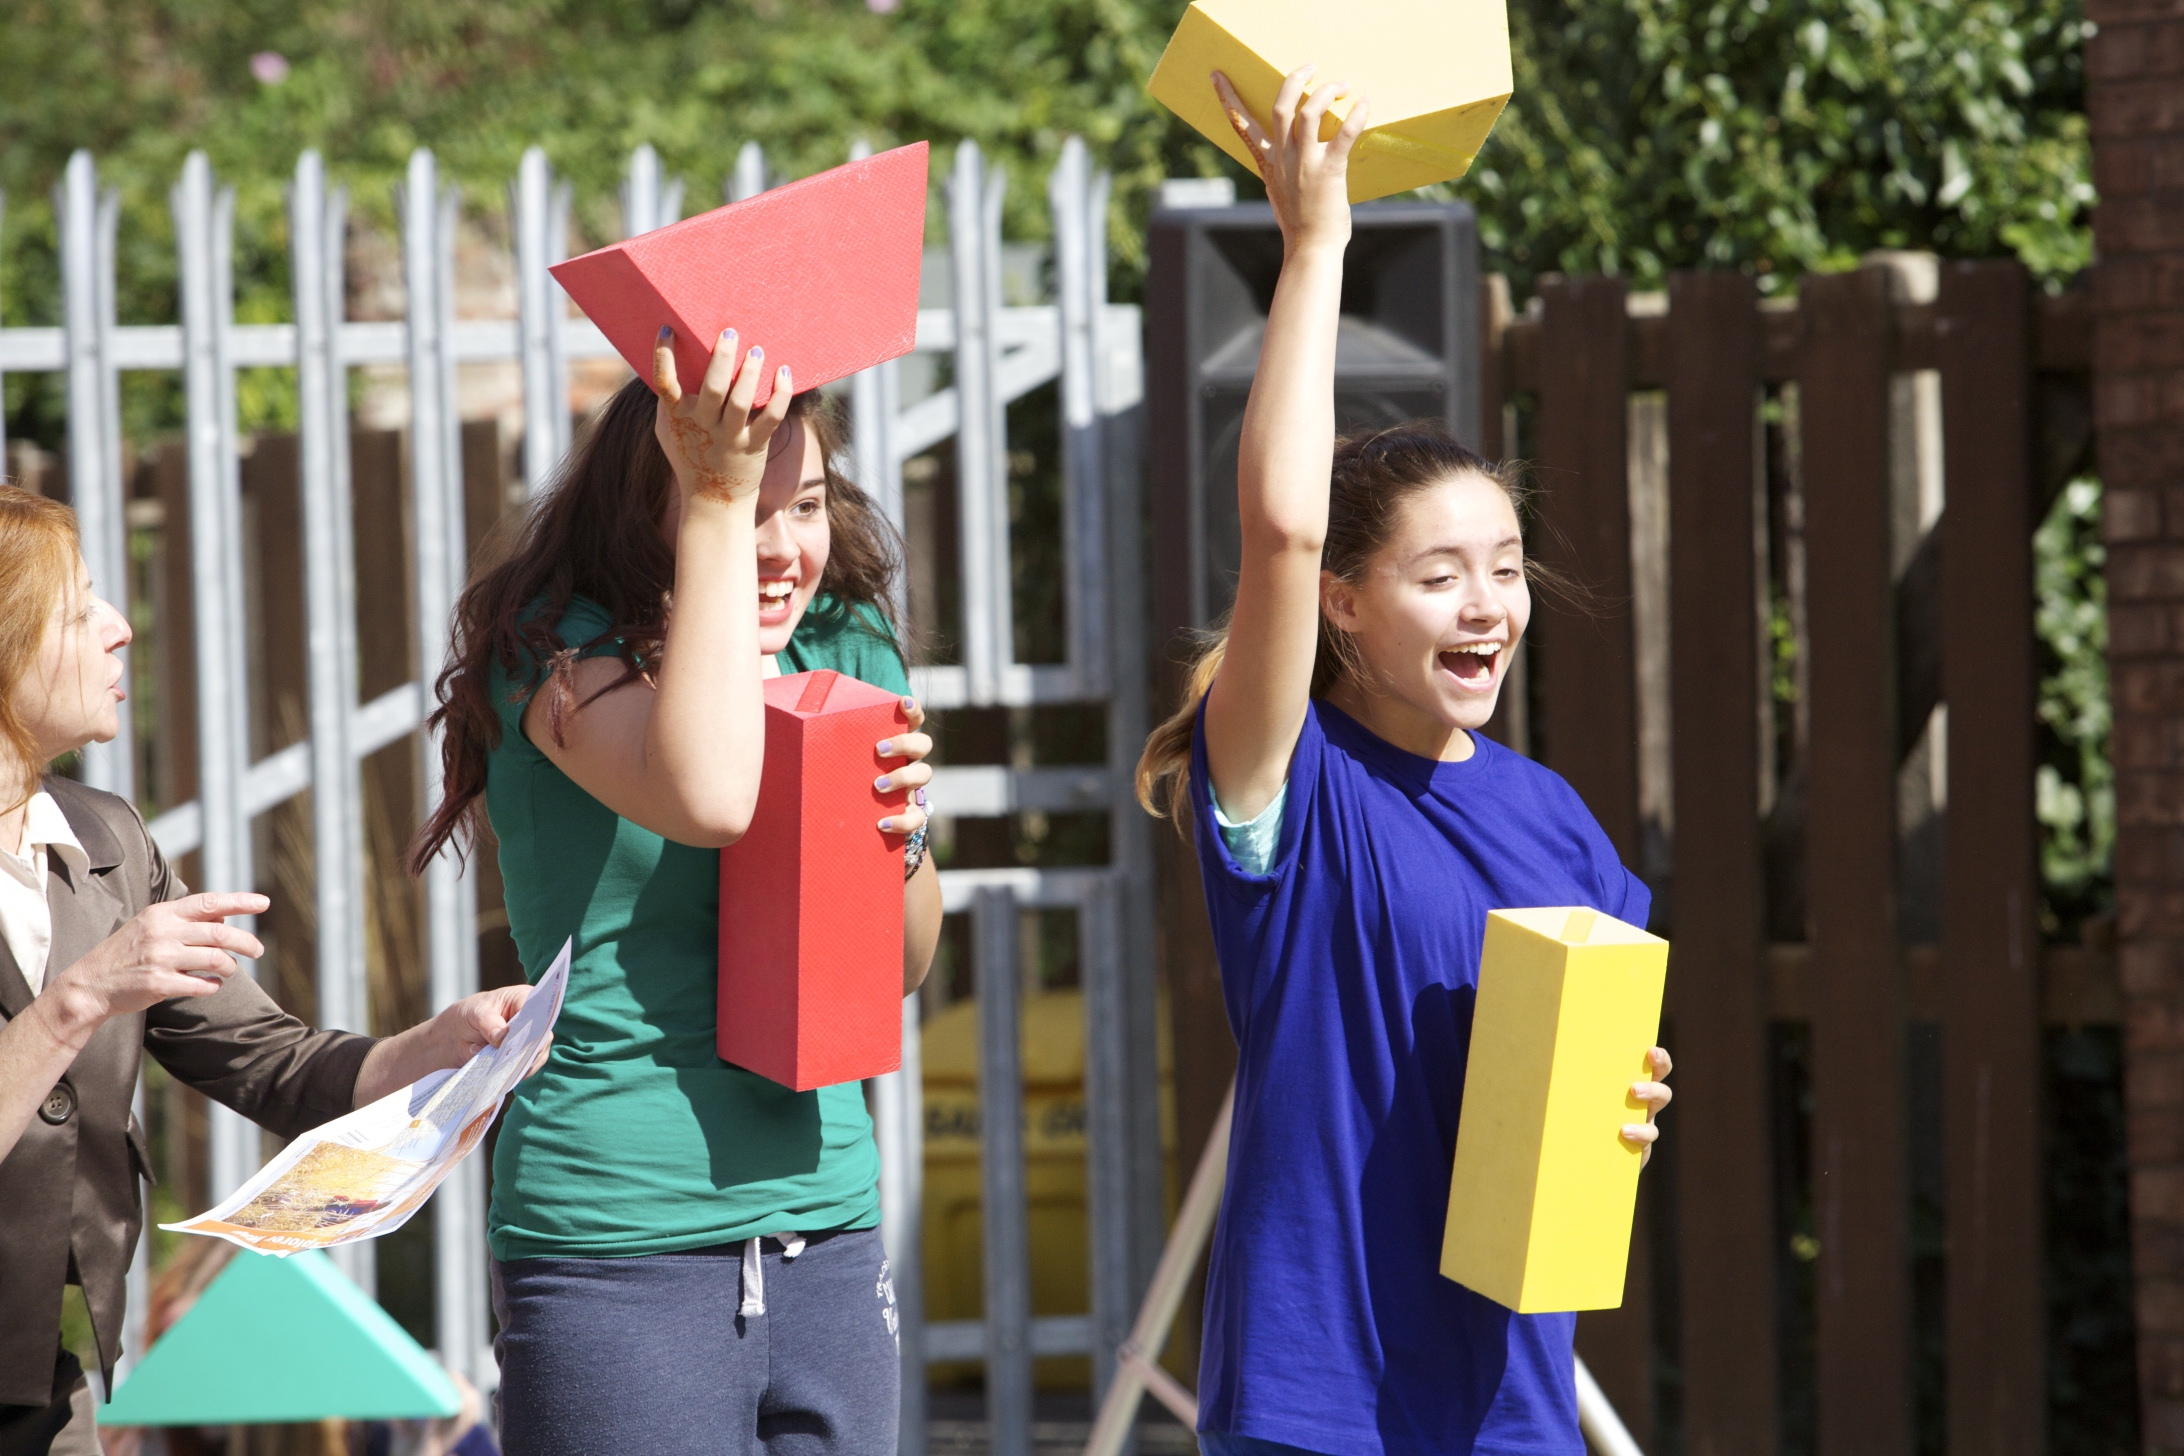 Two girls hold large shape blocks above their heads.